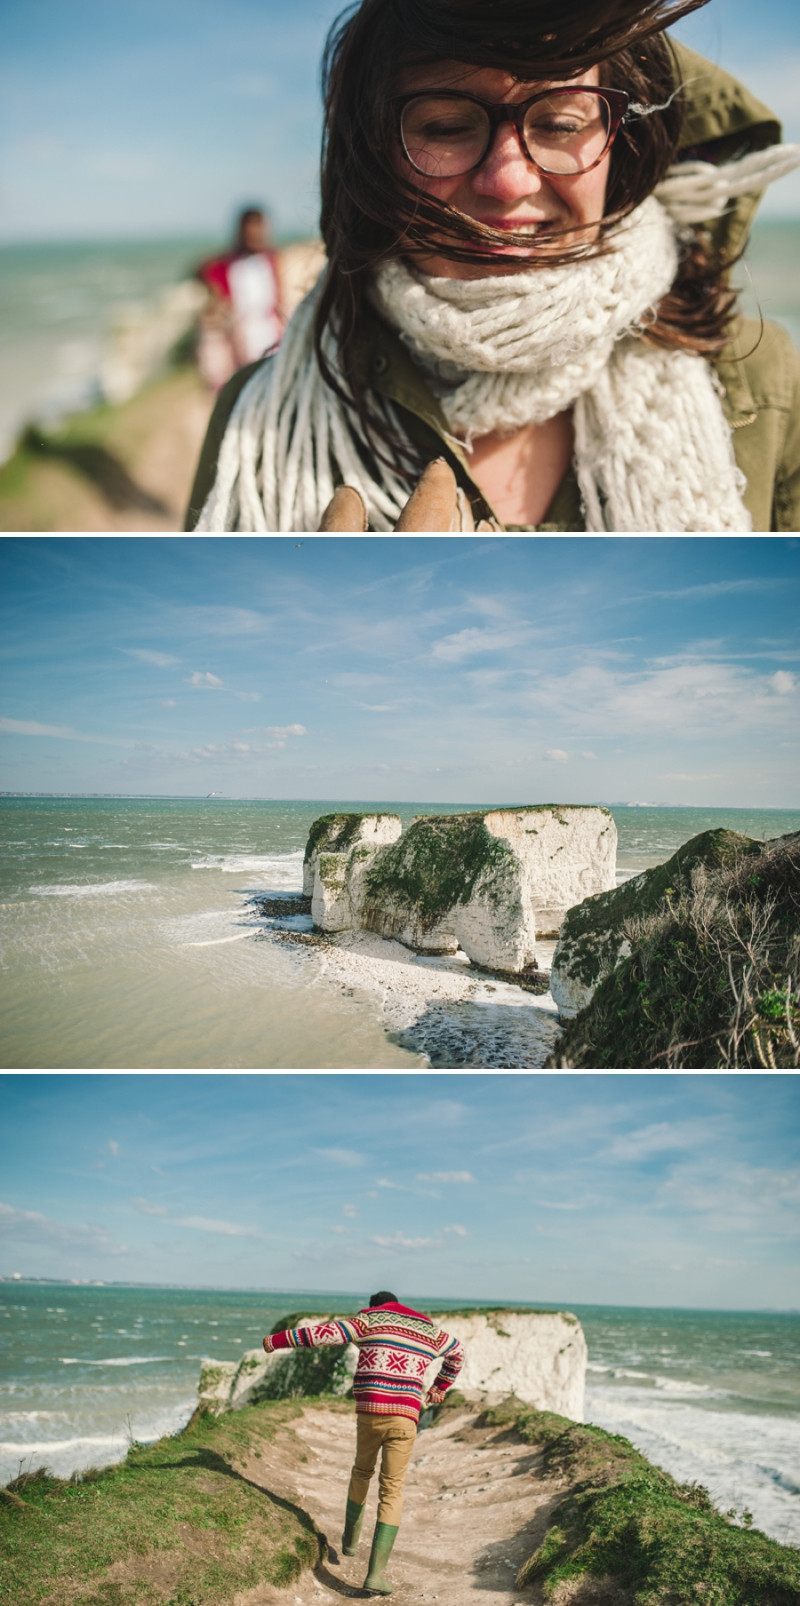 A coastal engagement shoot by Rebekah Murray 0558 A Magical Day.